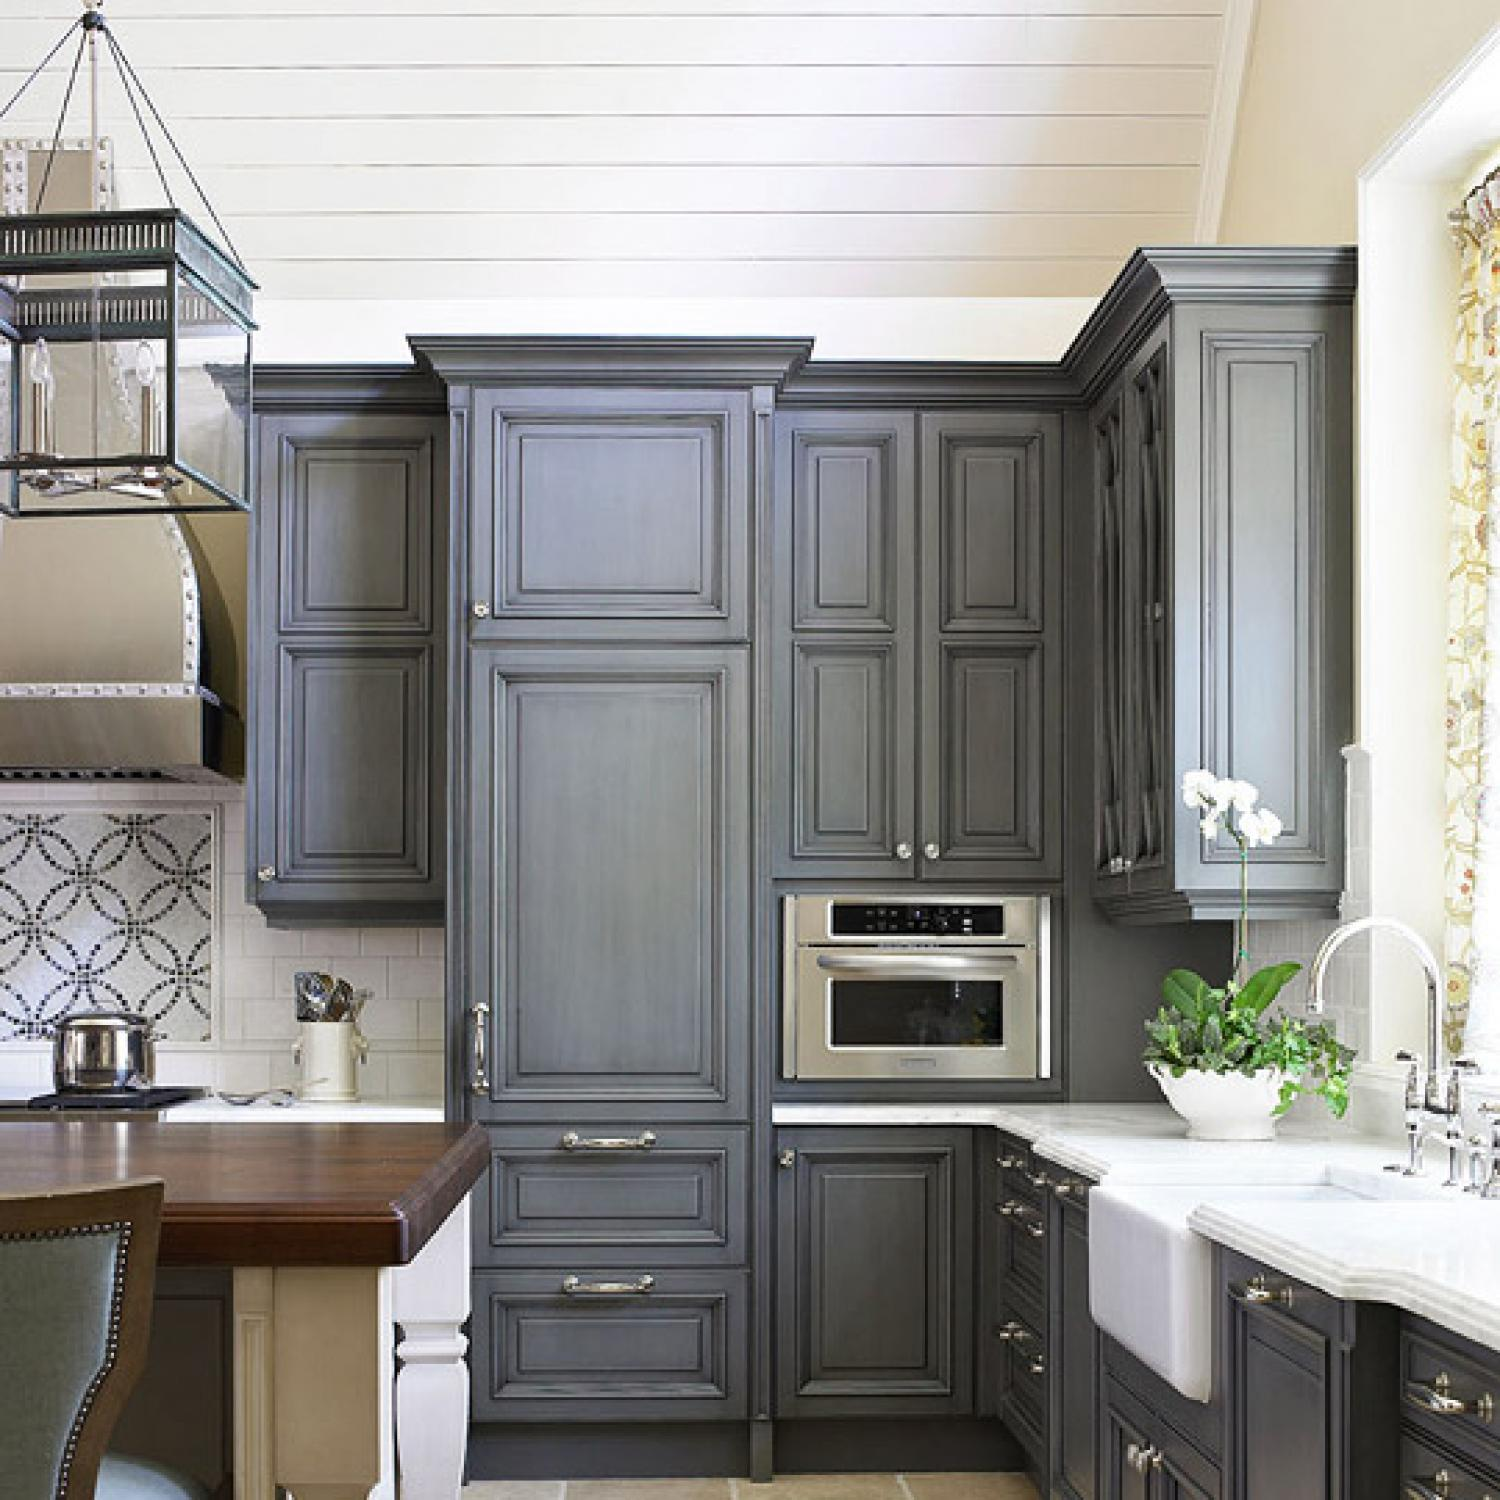 10 Kitchen Cabinet Tips: Our Most Pinned Kitchens